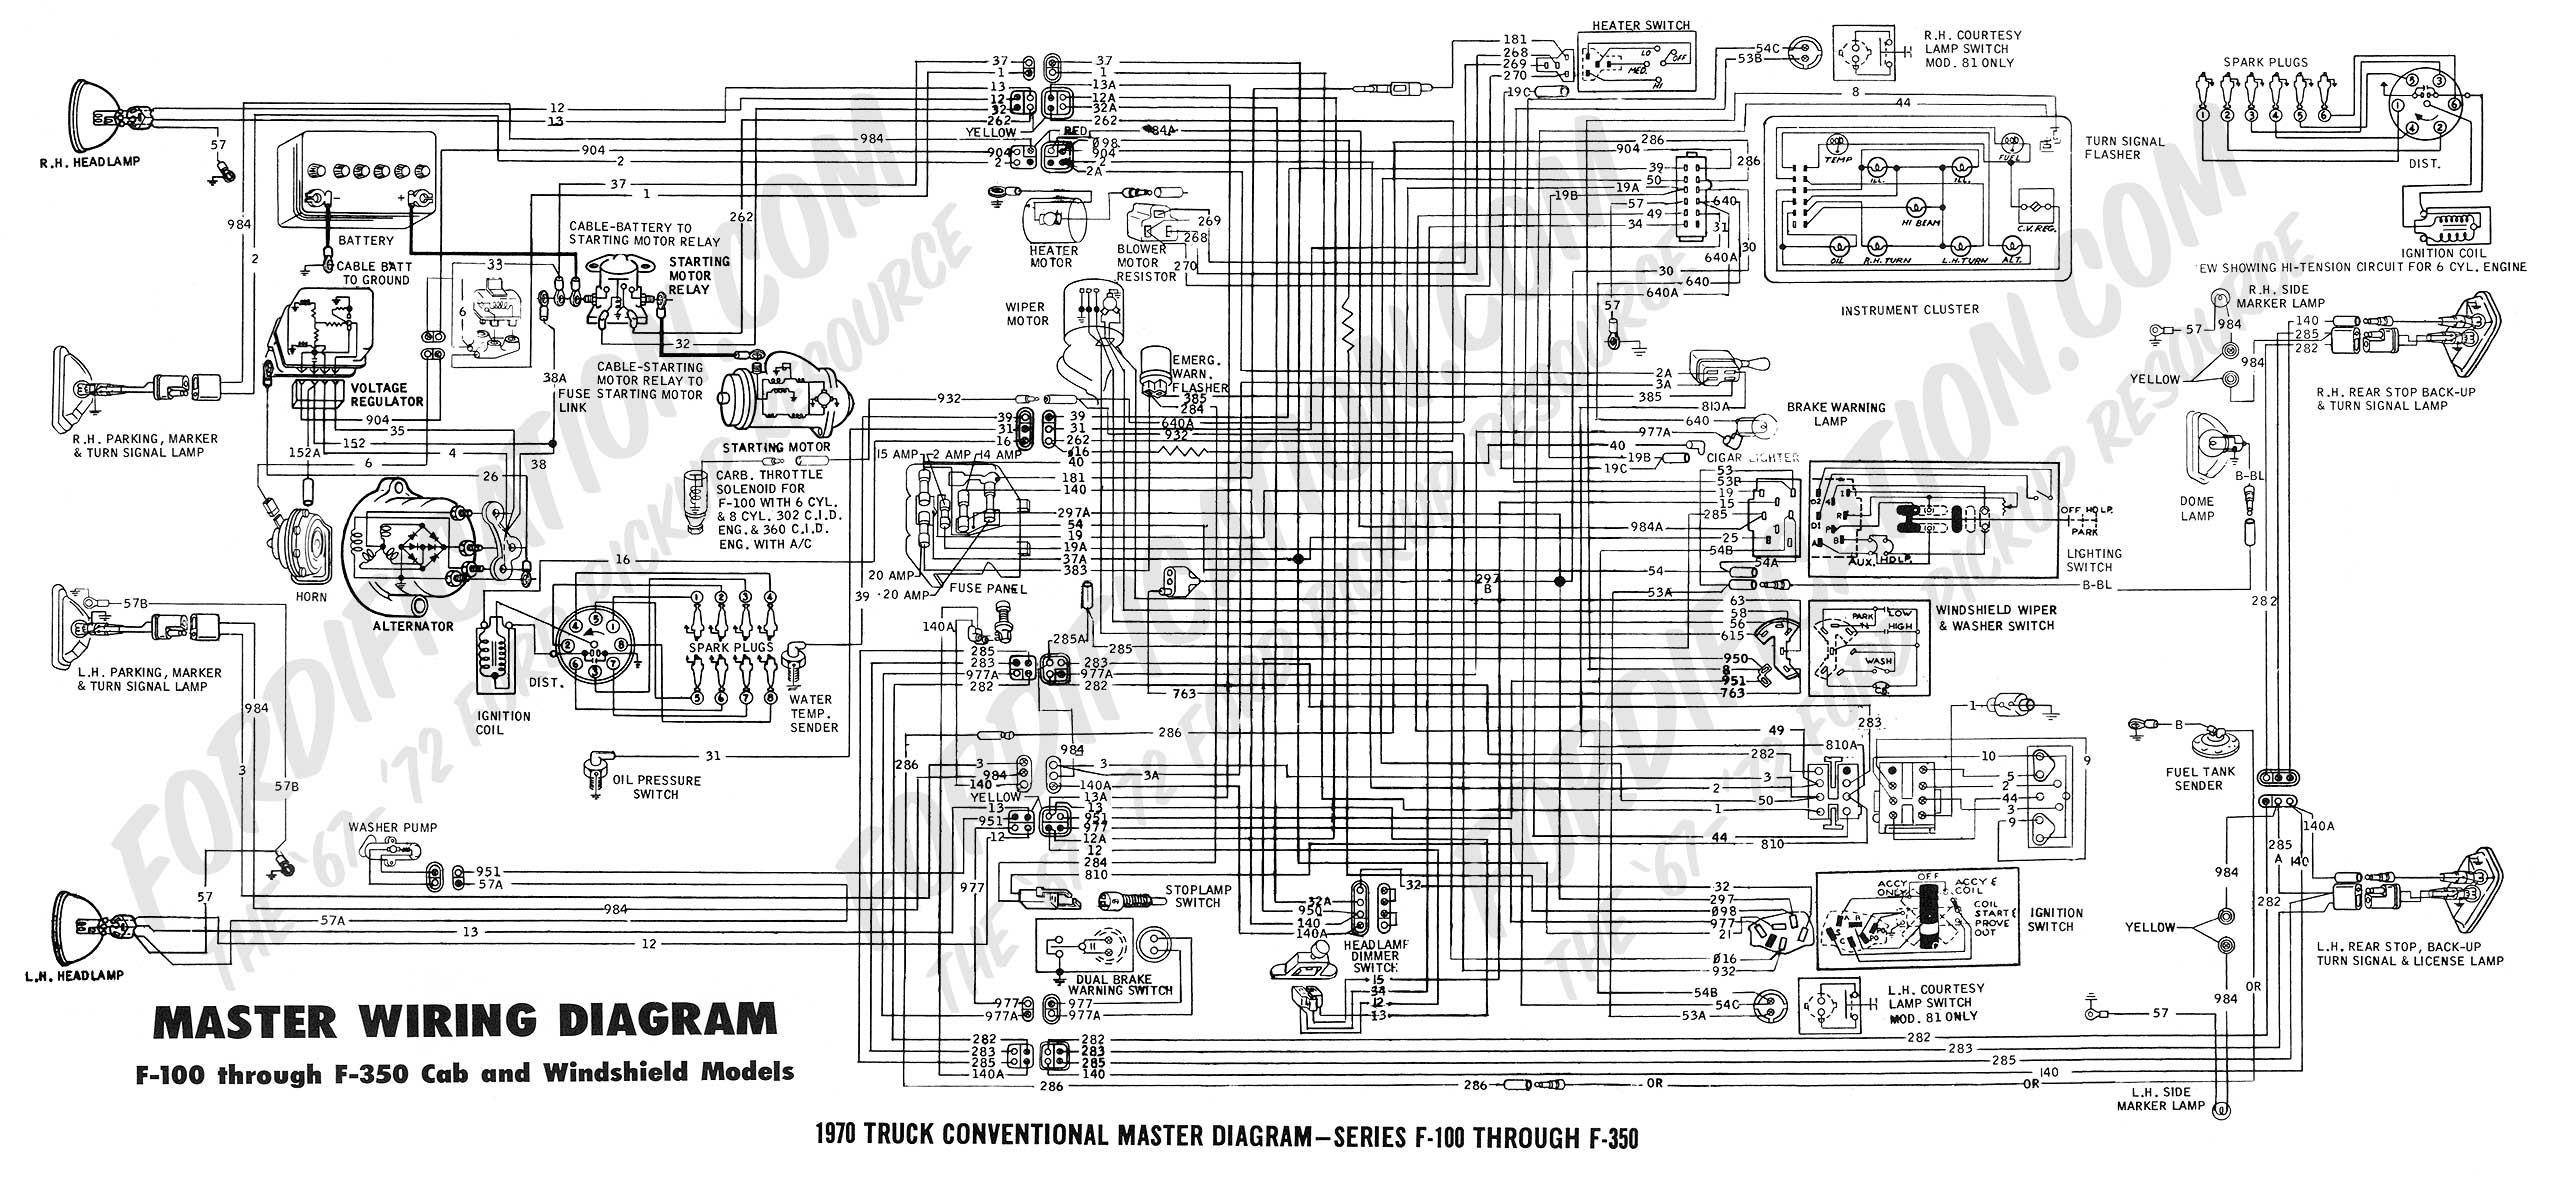 wiring diagram 70_master ford truck technical drawings and schematics section h wiring f750 wiring diagram at panicattacktreatment.co